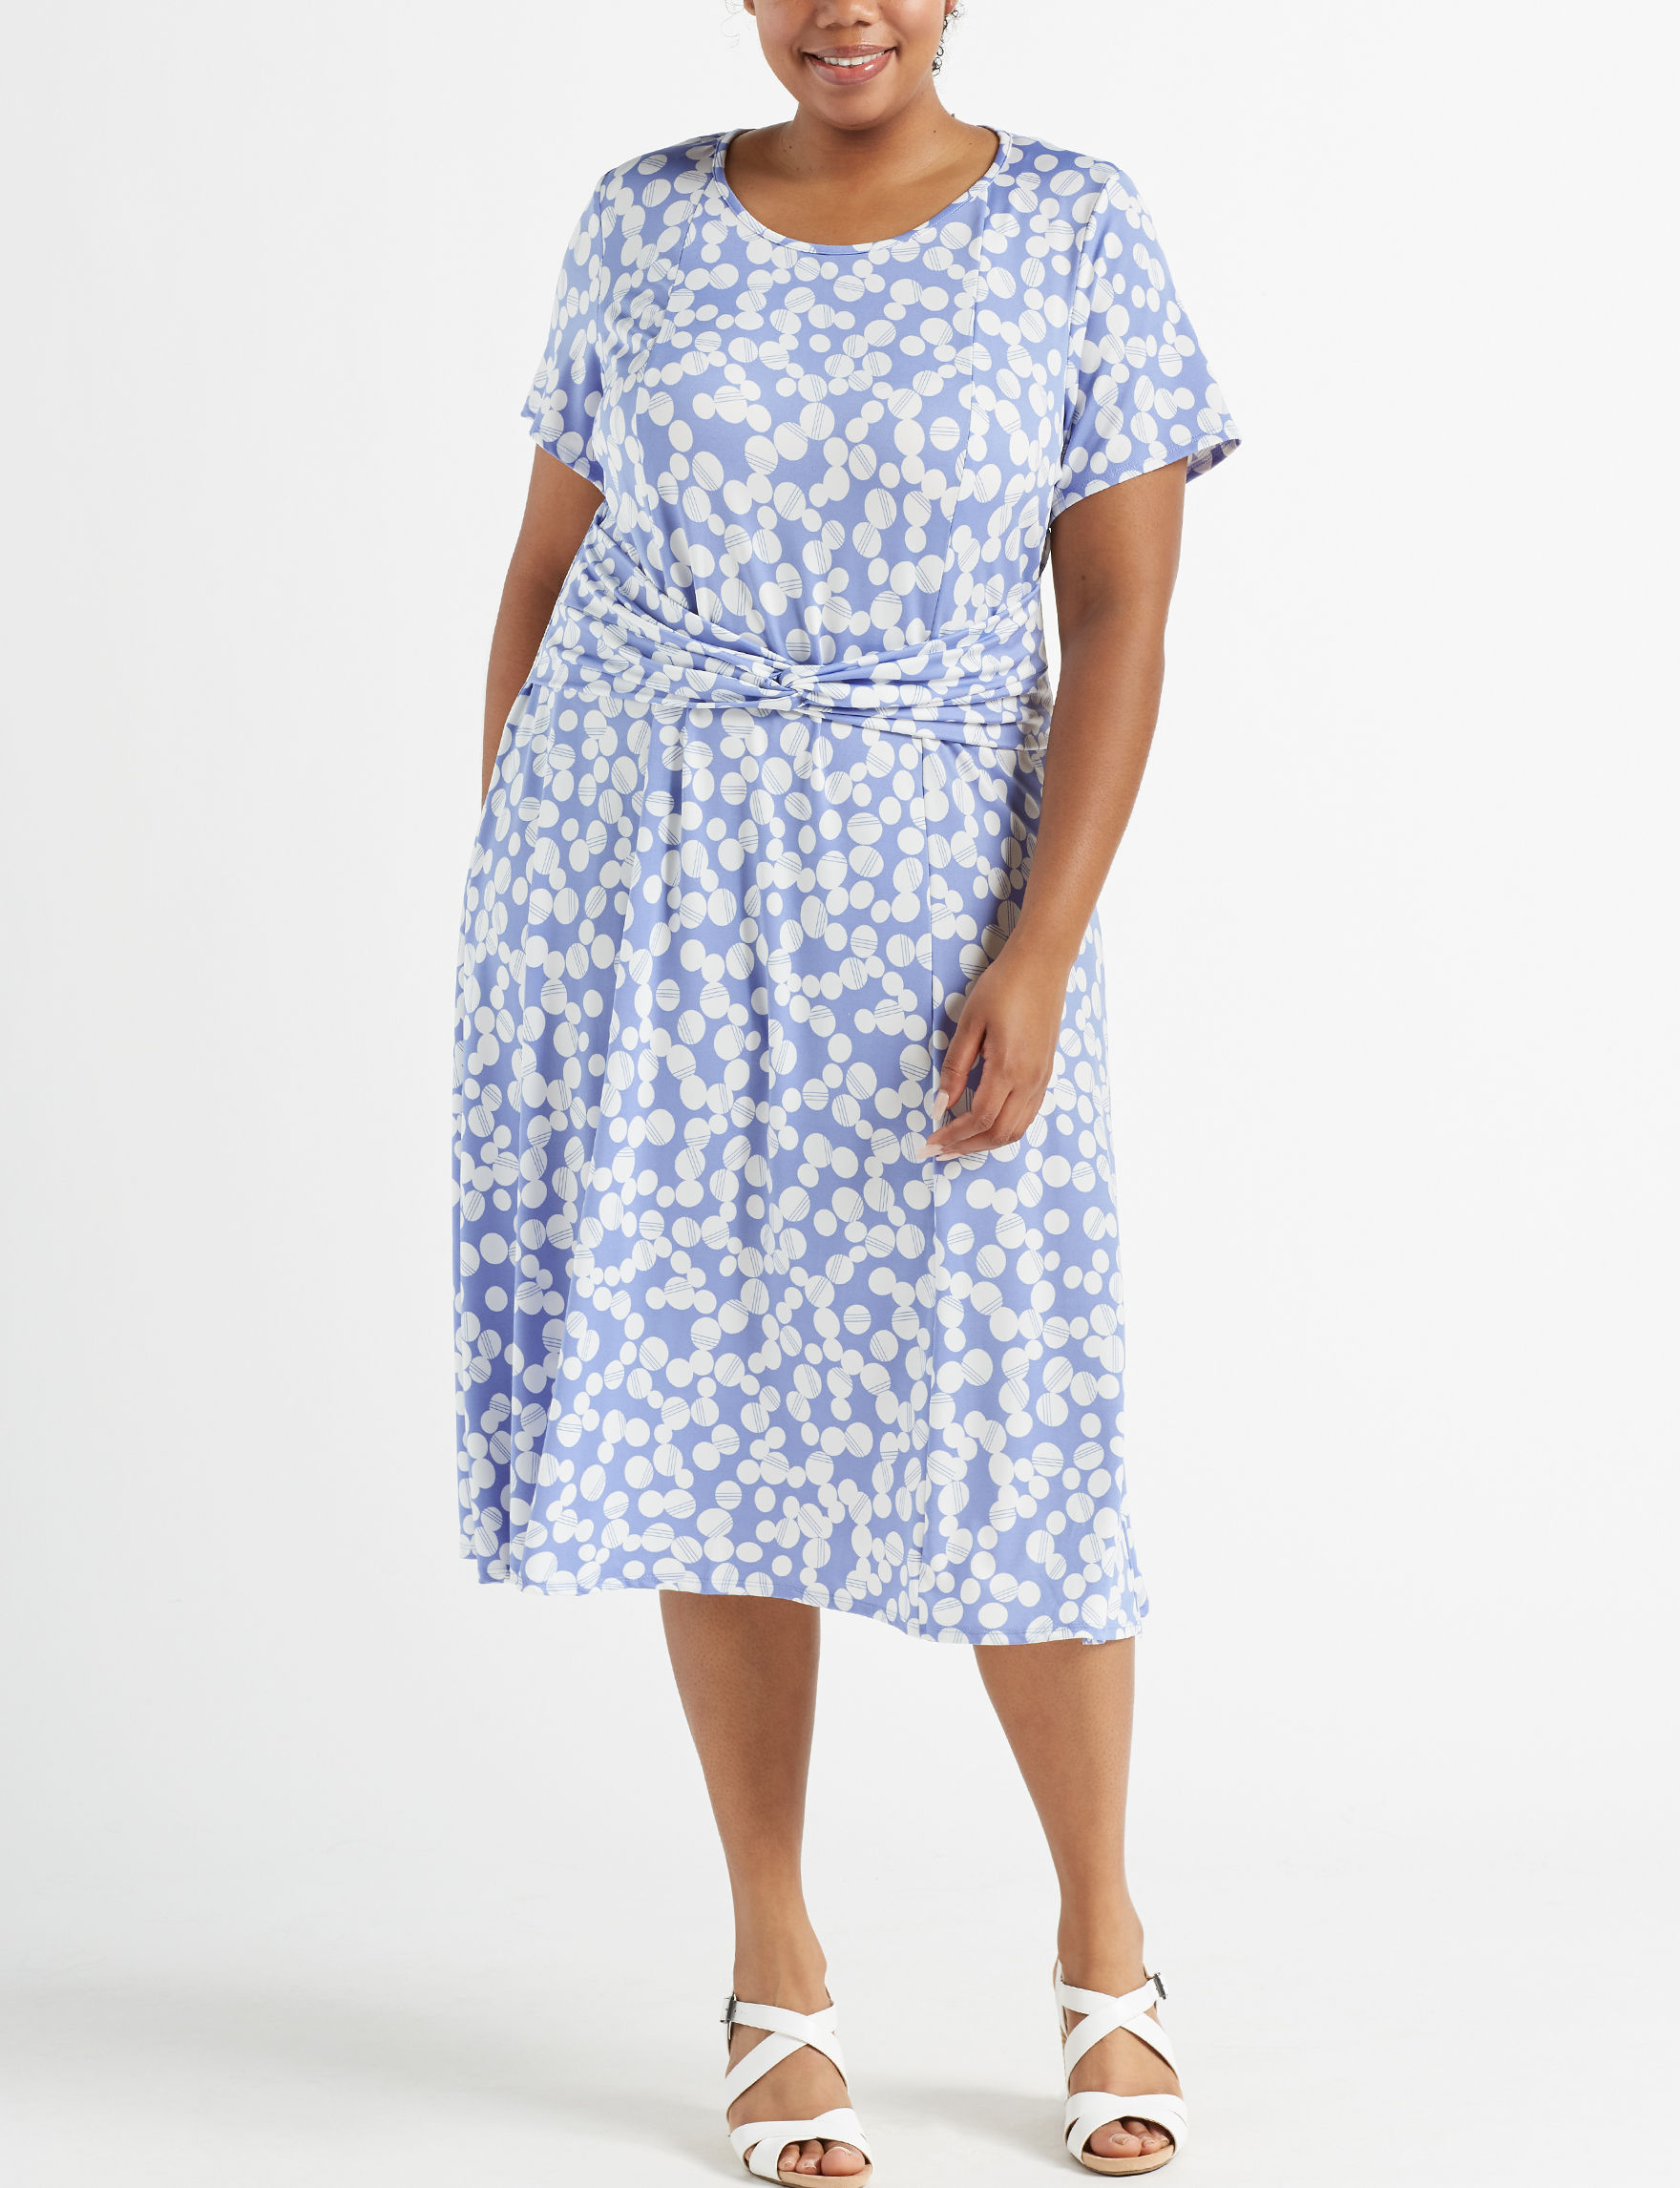 Perceptions Plus Size Polka Dot Midi A-line Dress | Stage Stores